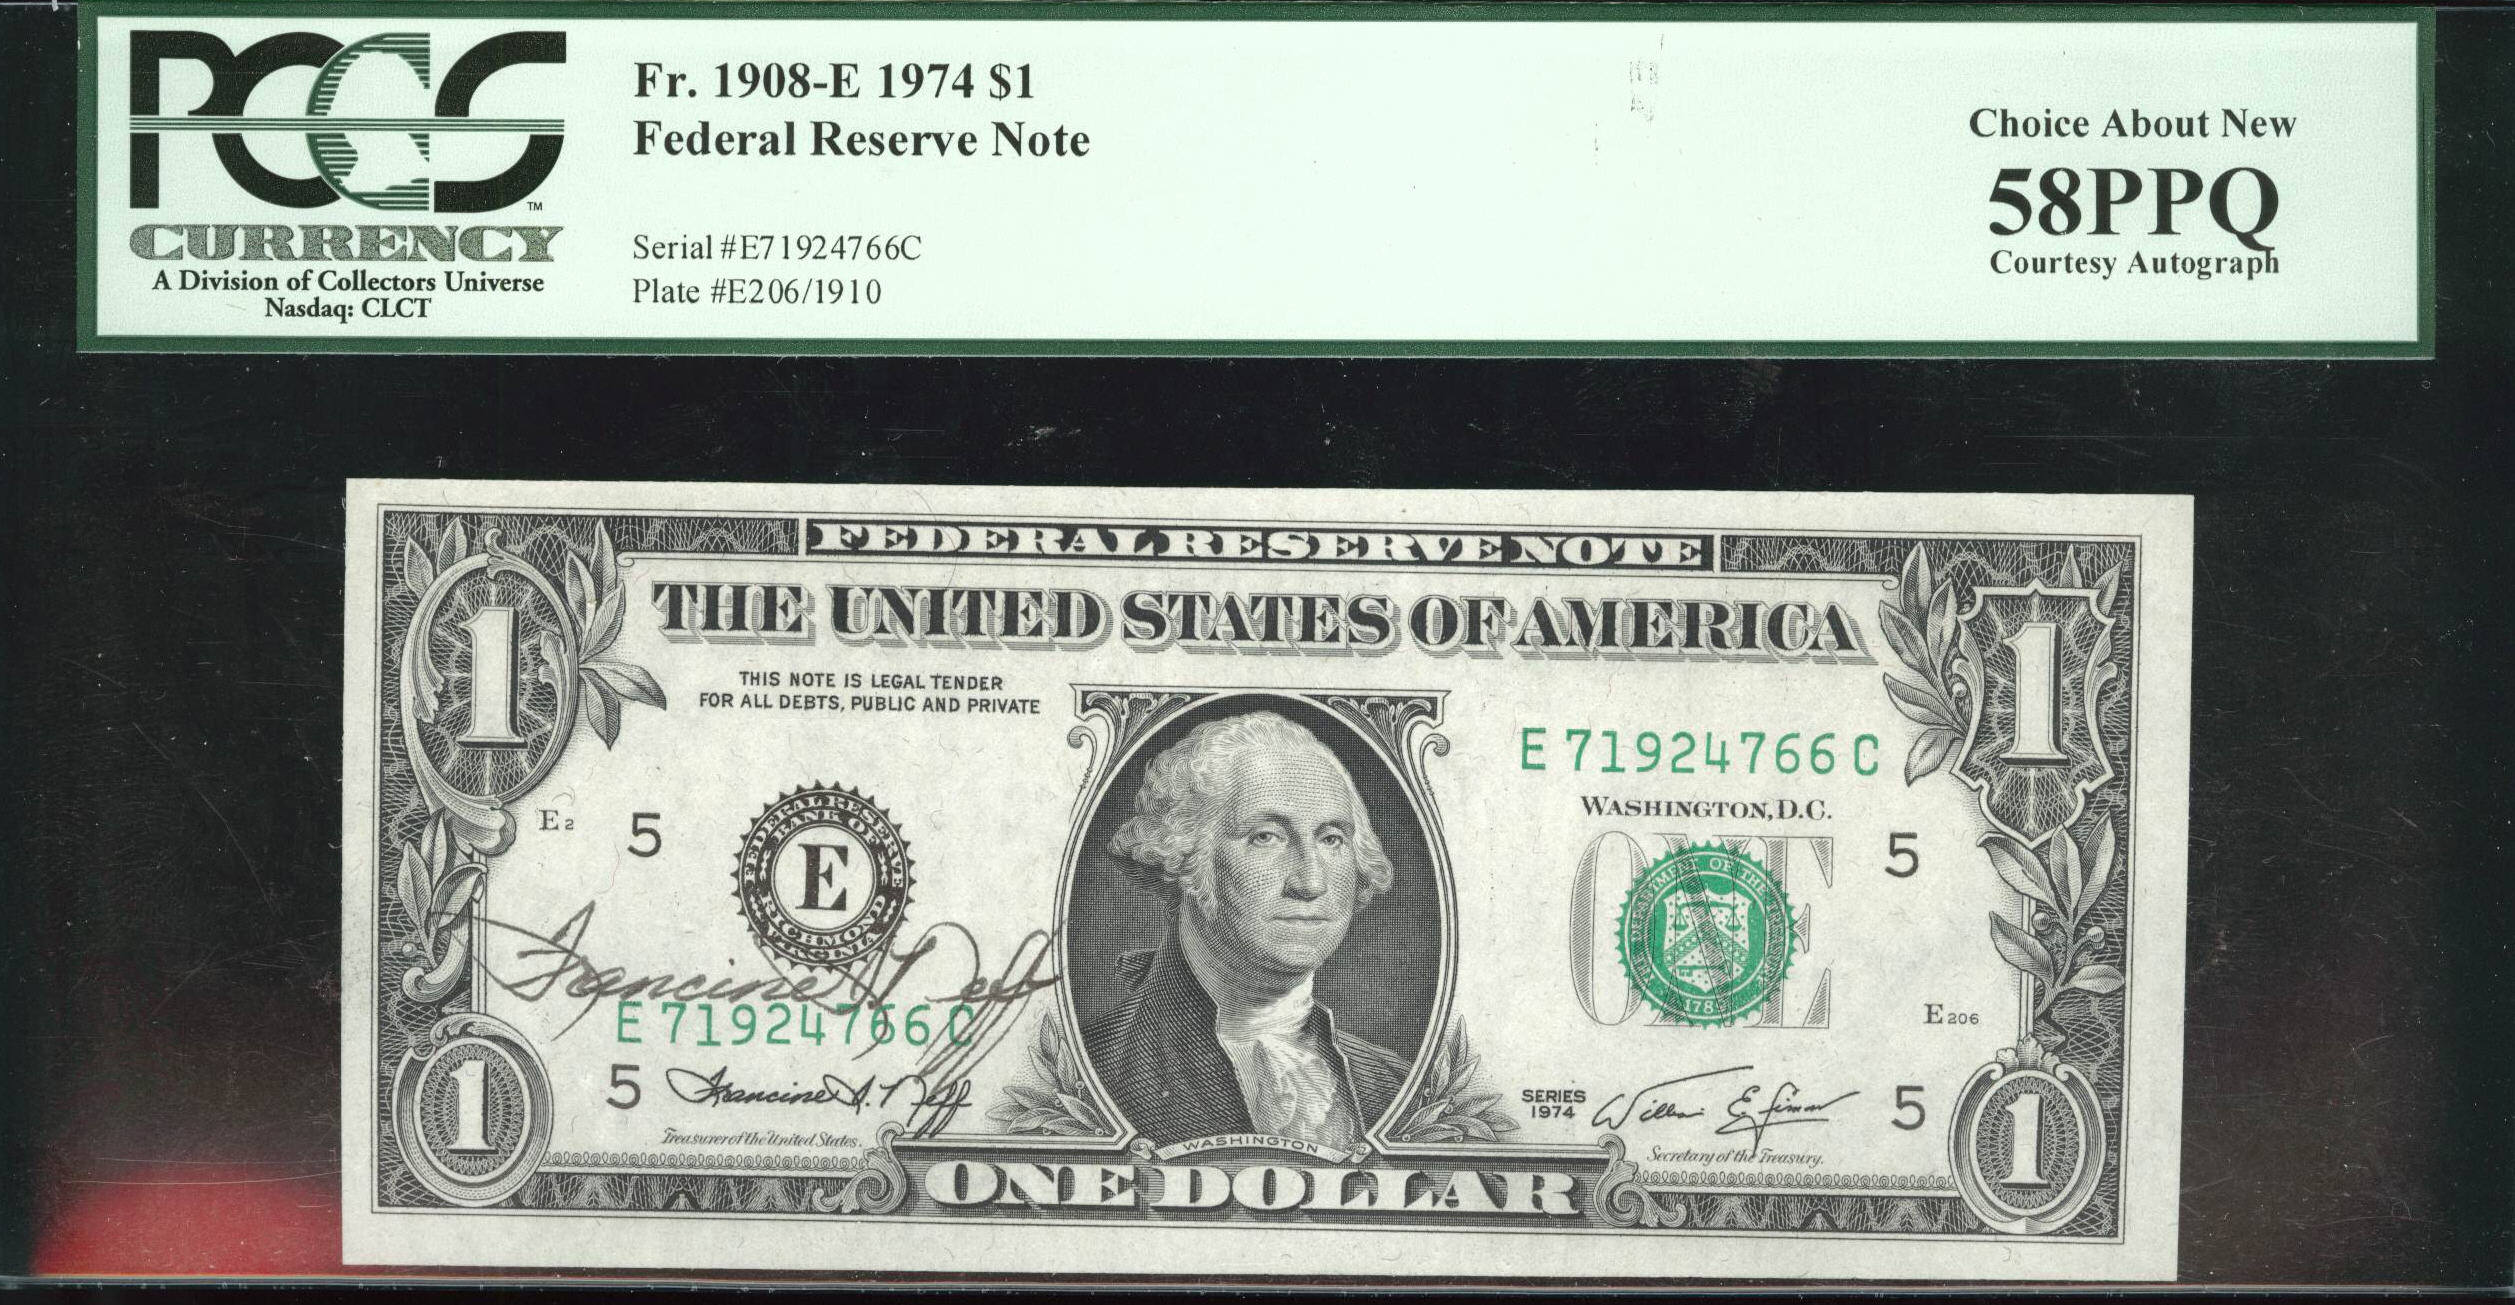 Fr 1935-G 1976 Two Dollar Note 2 Chicago PCGS Graded 64 PPQ Very Choice New Bill